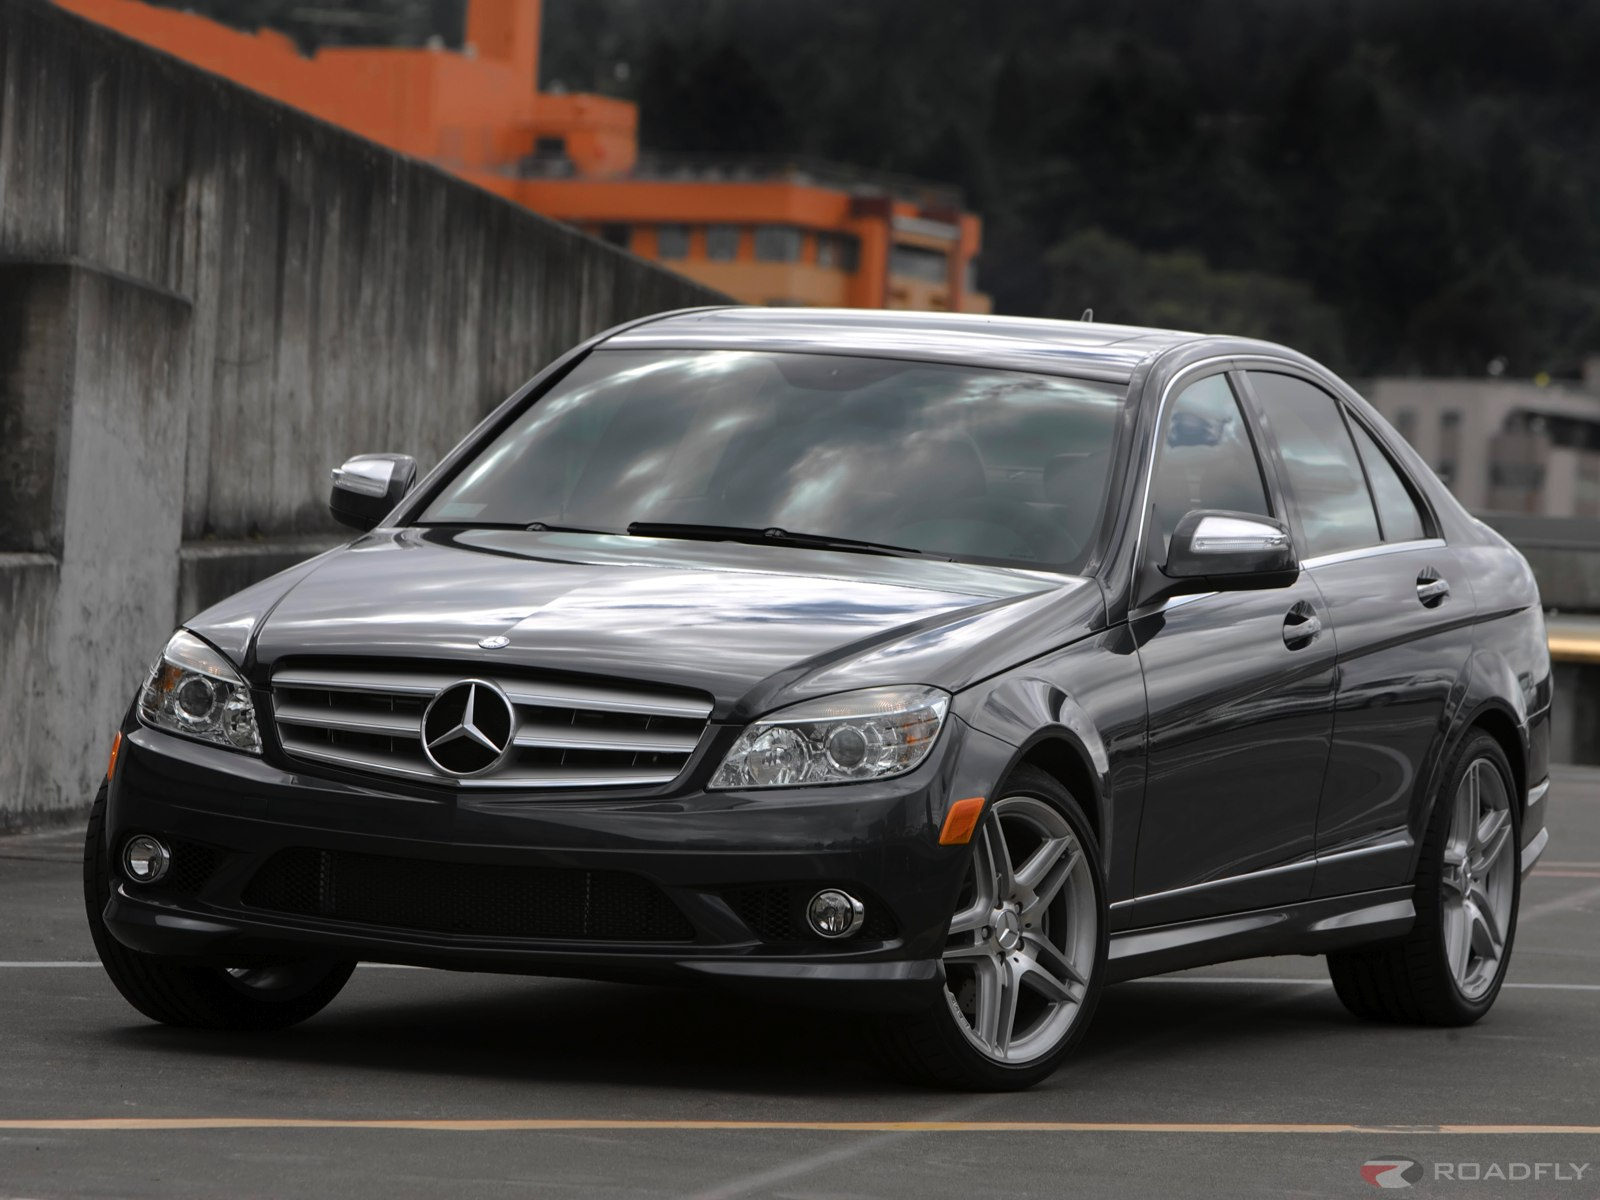 Mercedes Benz C Class Cars Review and photo Free Download Image Of